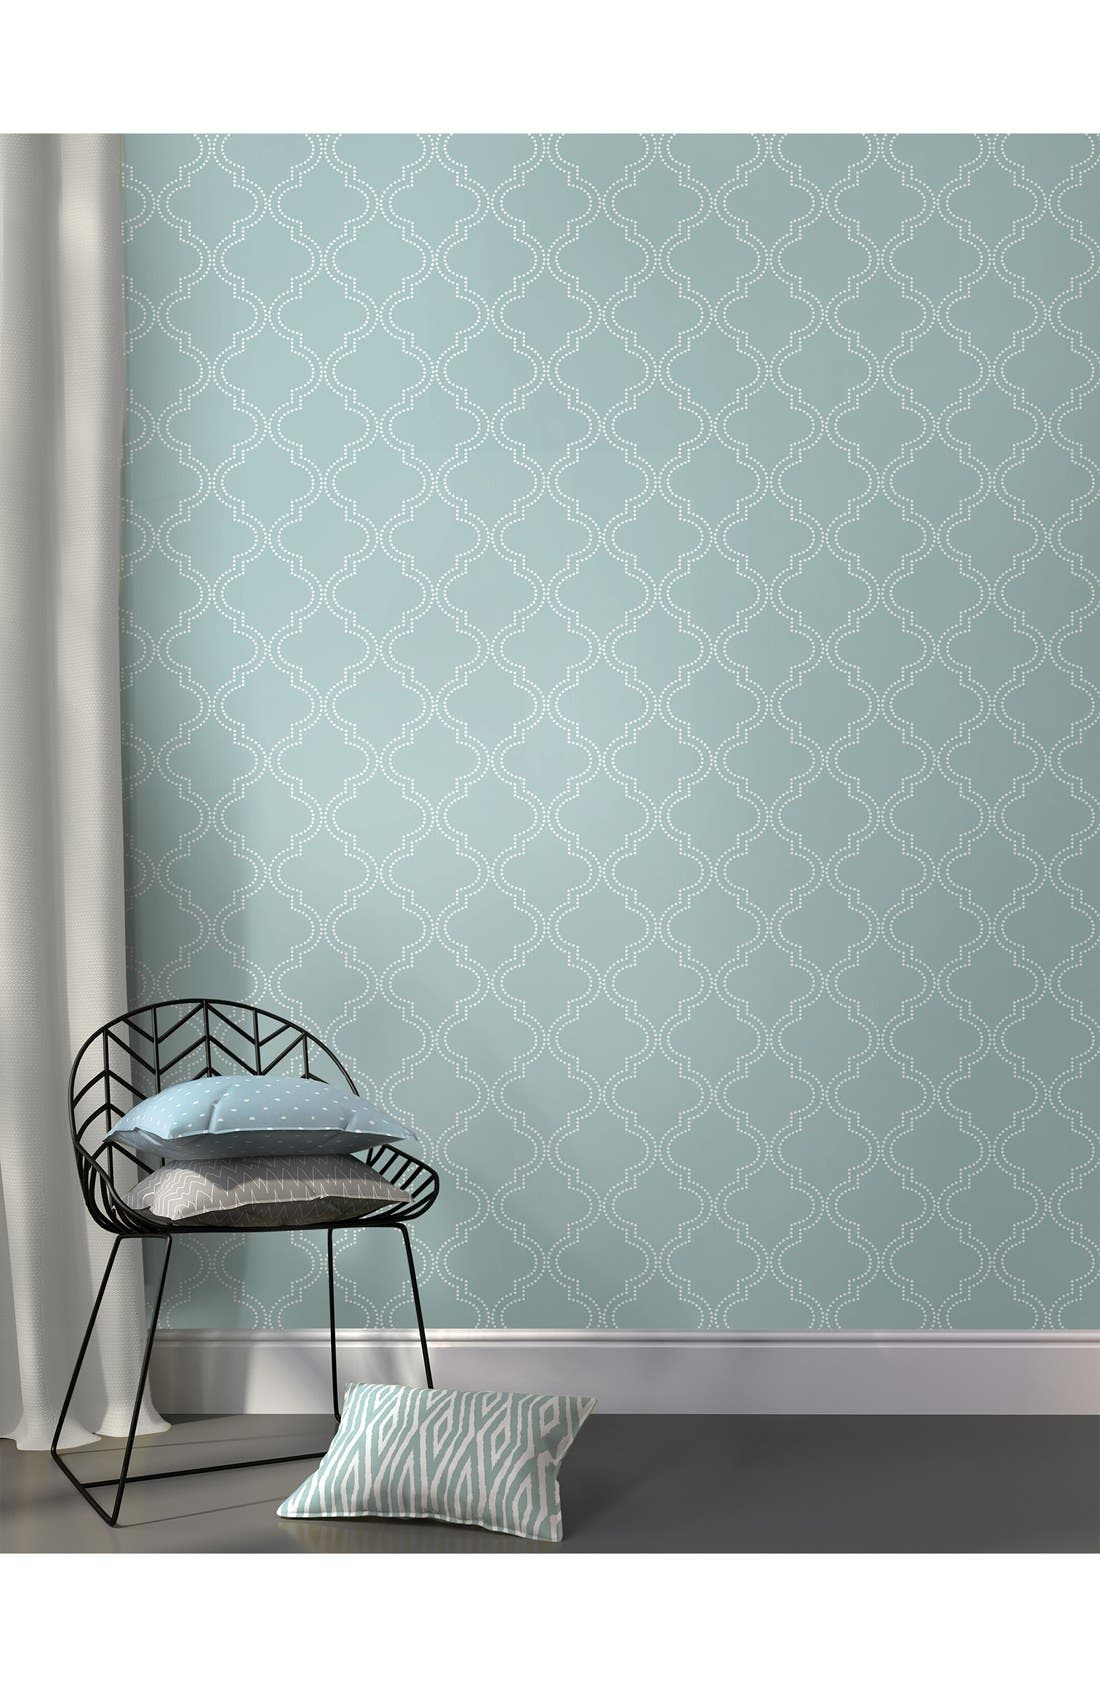 'Quatrefoil'  Peel & Stick Vinyl Wallpaper,                             Alternate thumbnail 5, color,                             401